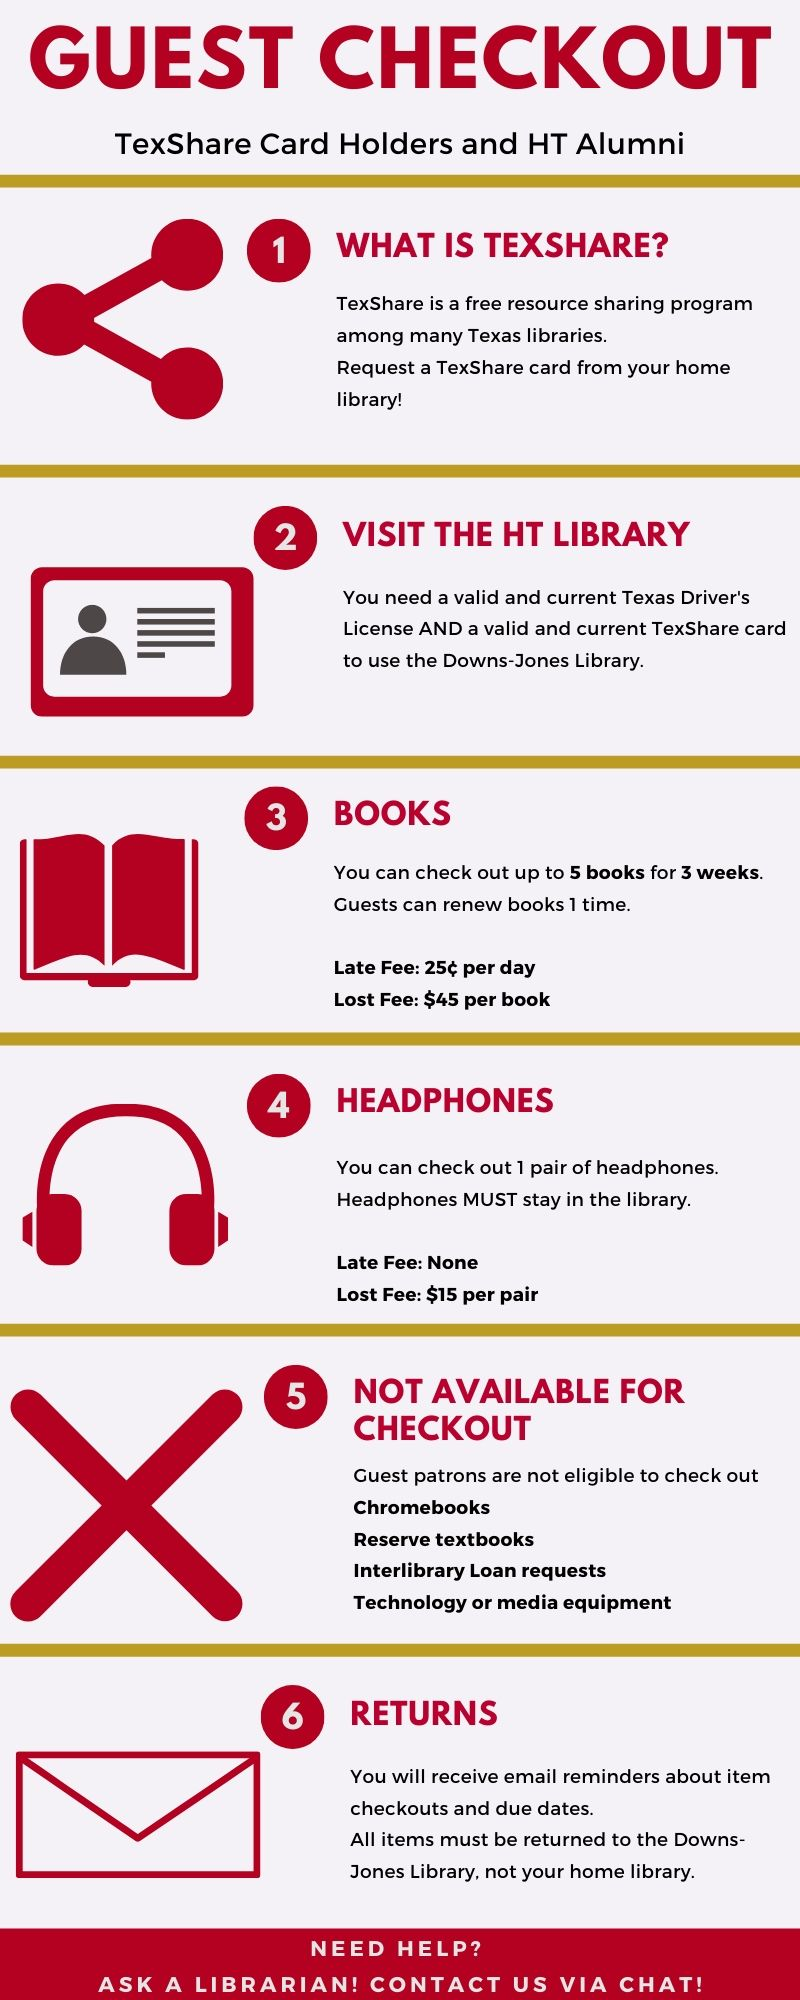 Graphic indicating lending policies for TexShare card holders and HT alumni. Guests may check out up to 5 books for 3 weeks, 1 pair of headphones within the library. Guests cannot check out Chromebooks, reserve textbooks, or technology. Guests may not make Interlibrary Loan requests.